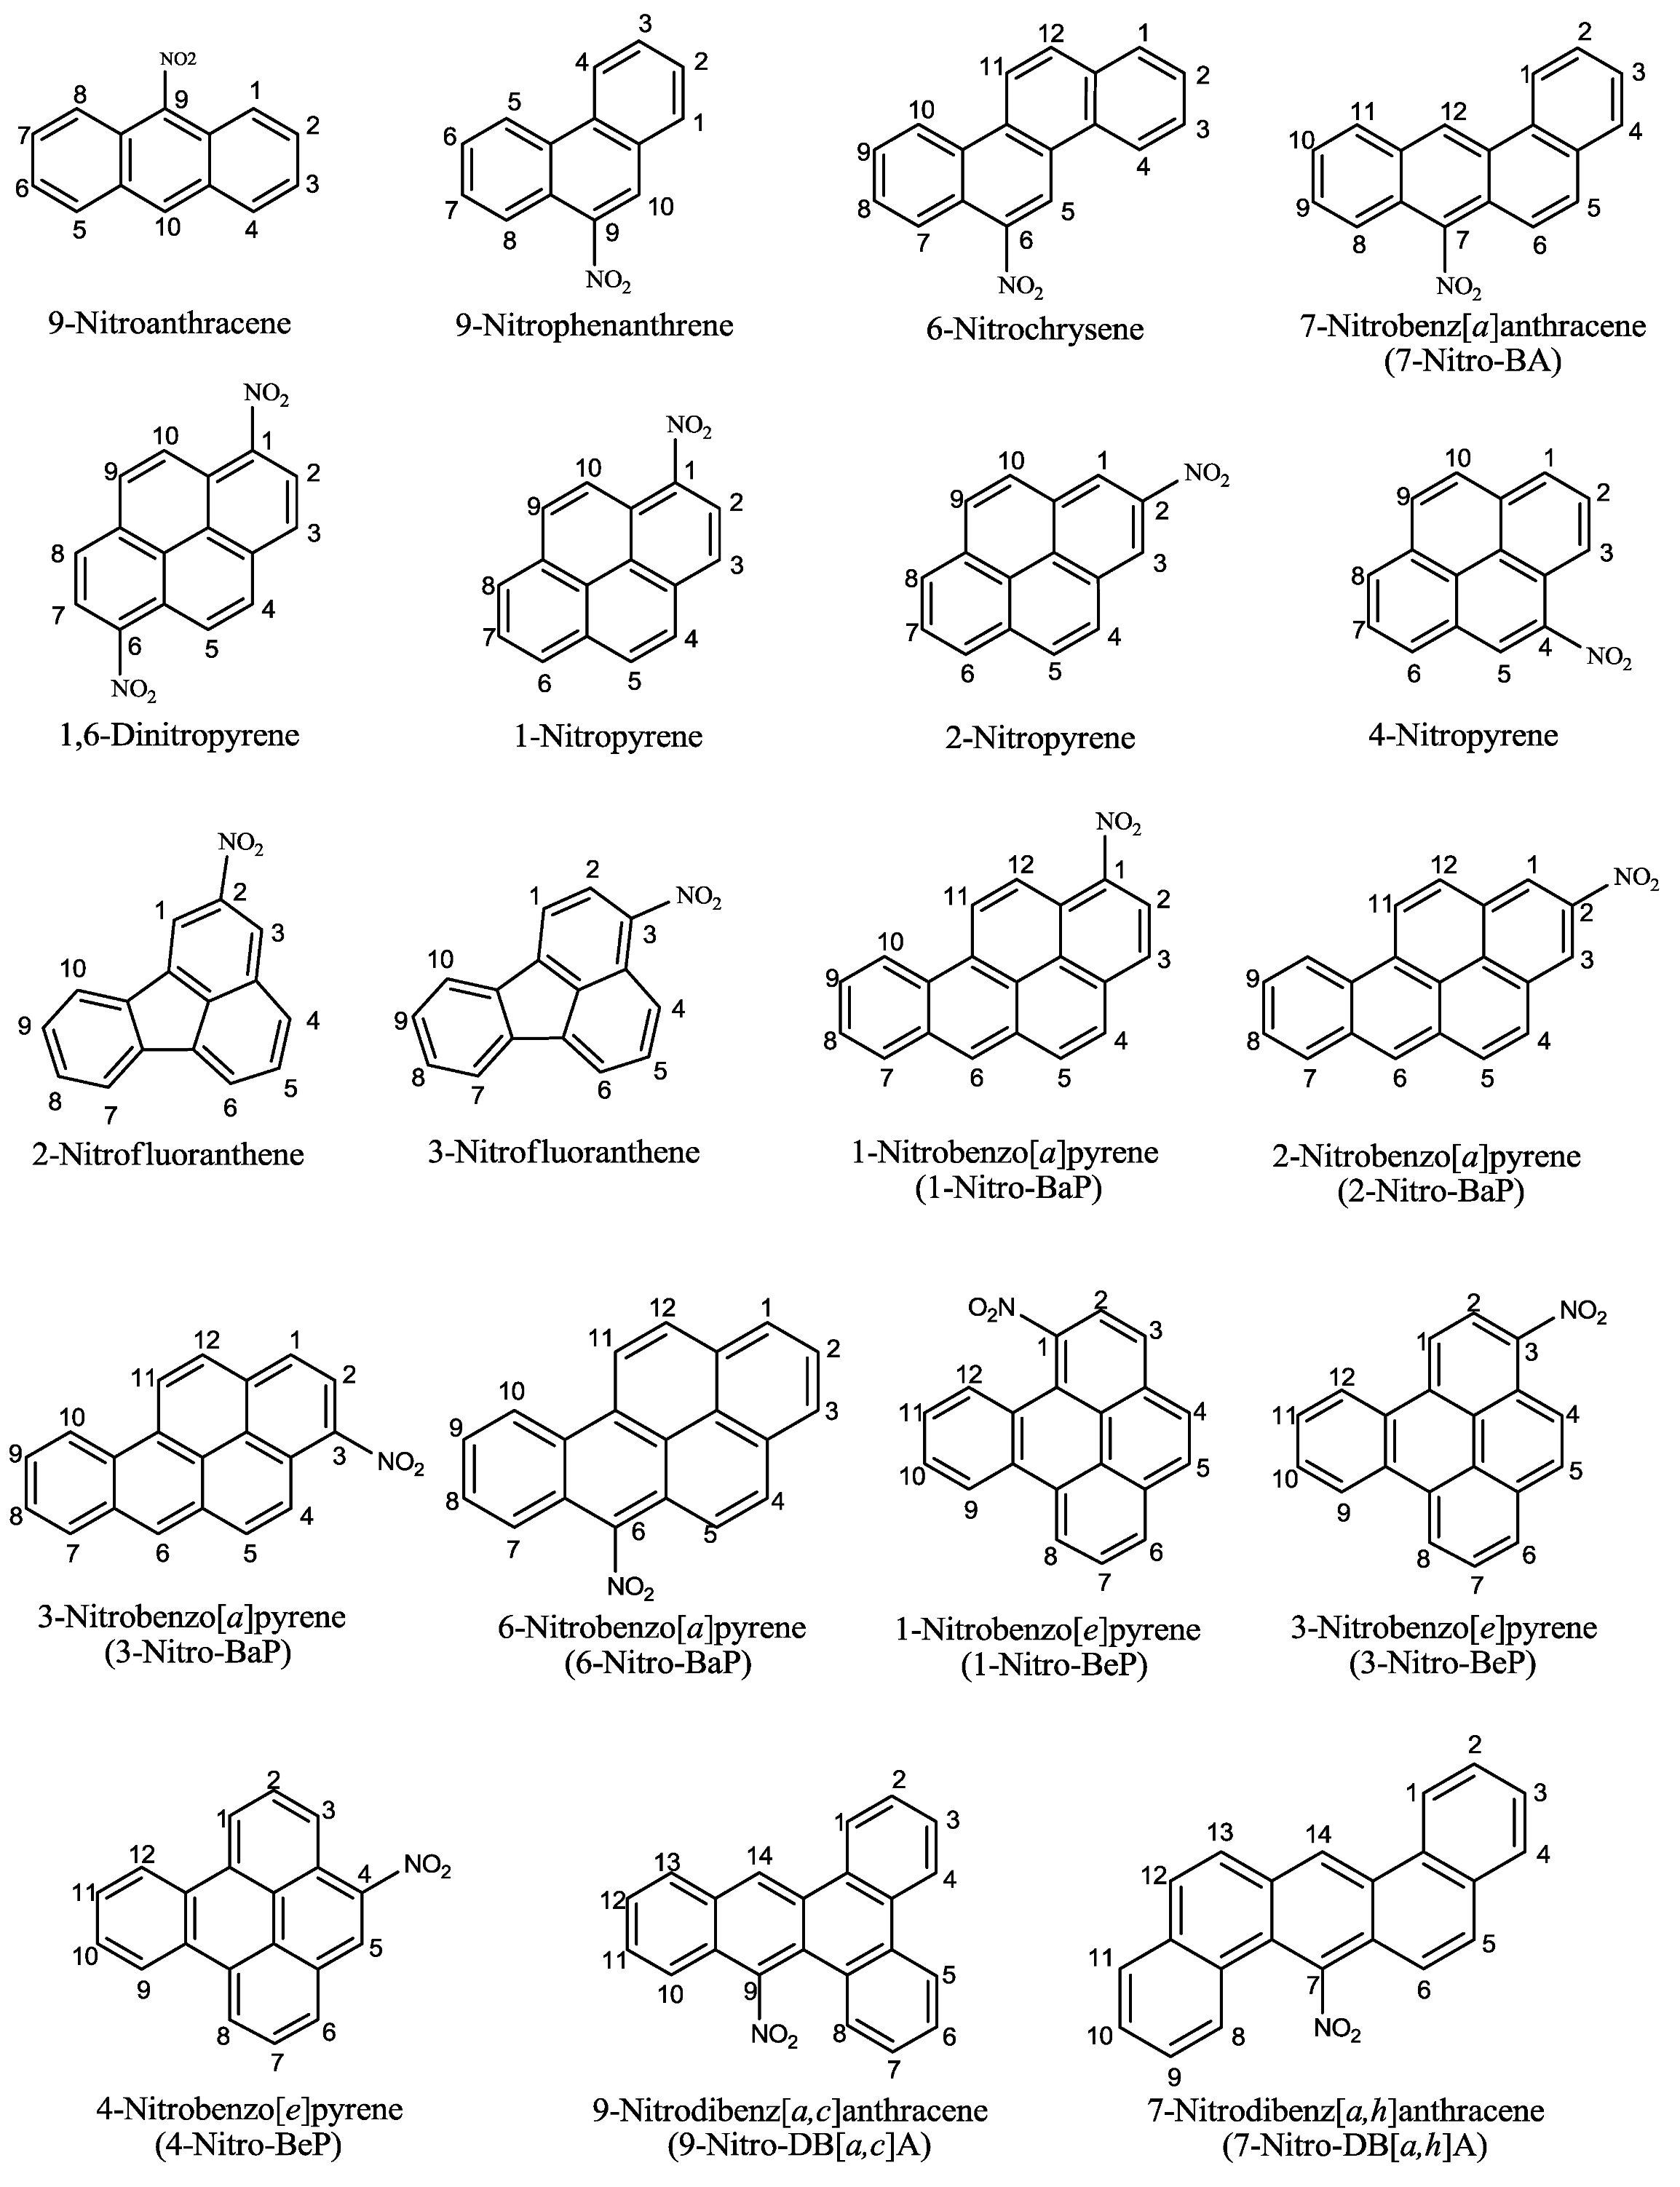 pahs paper research Polycyclic aromatic hydrocarbons (pahs) are ubiquitous  of environmental  contaminants by metrology institutes and research laboratories, with the  the  extraction method presented in this paper is a modification of the.